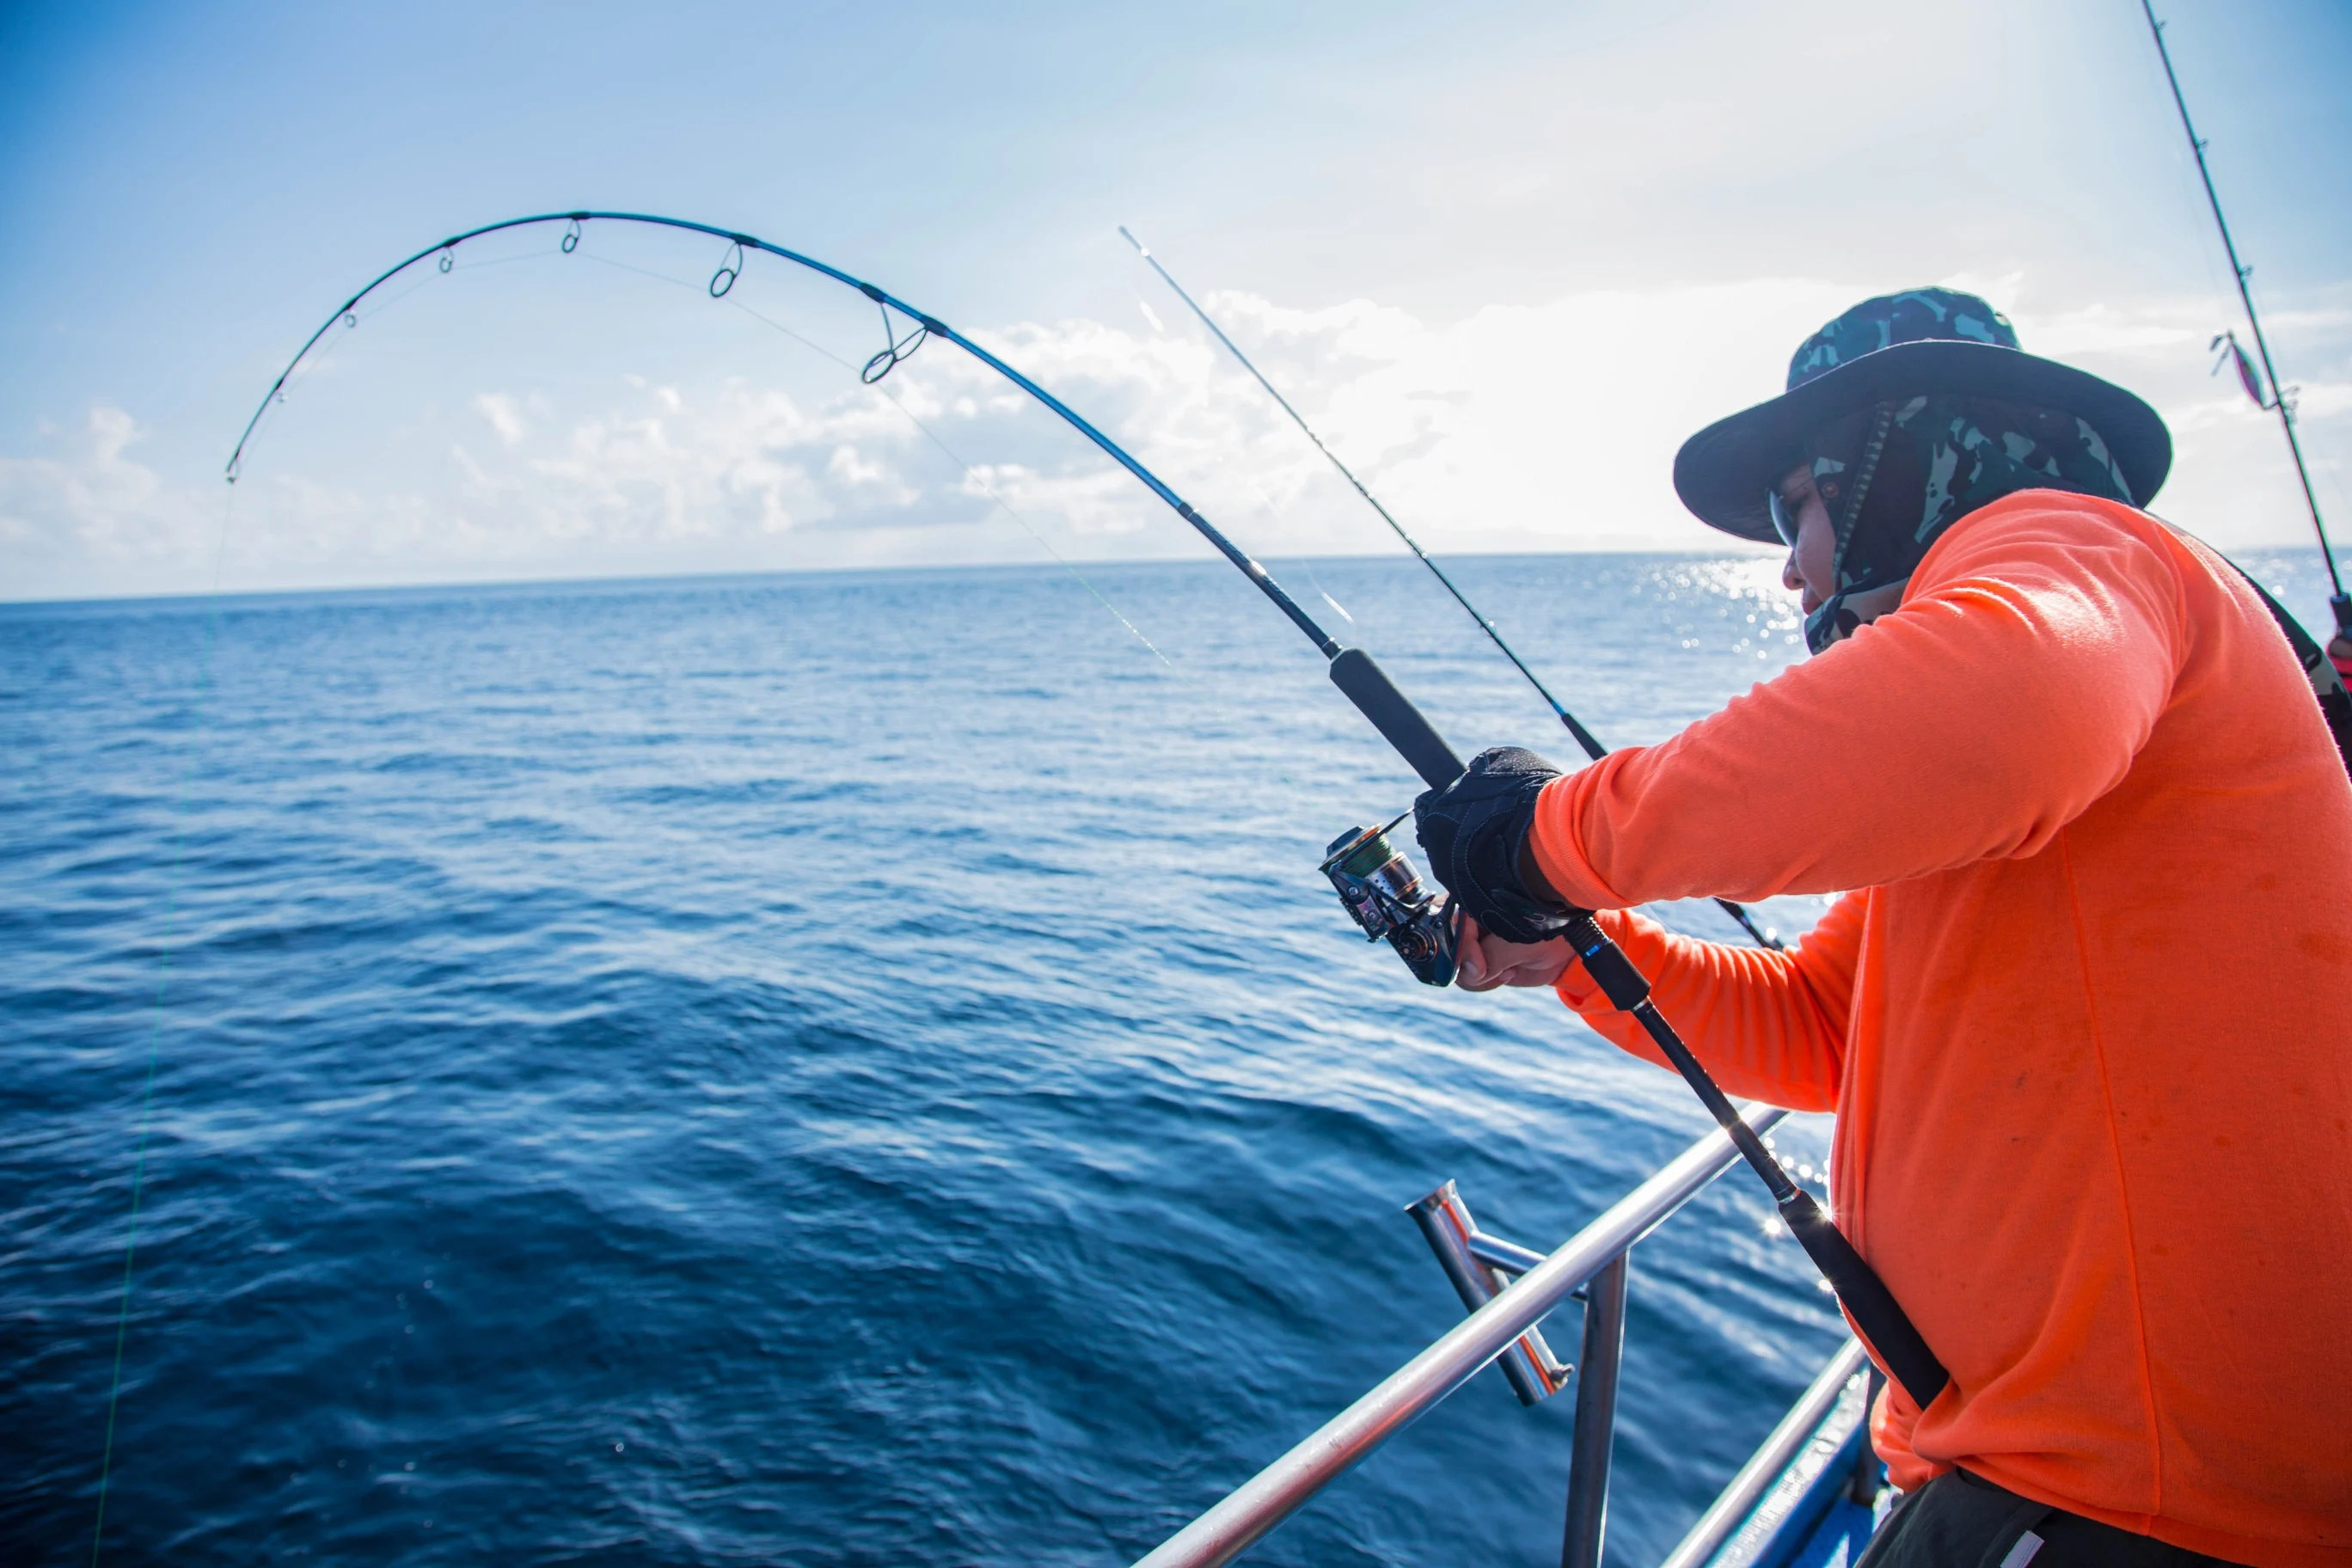 an angler holding a bent fishing rod on a fishing boat